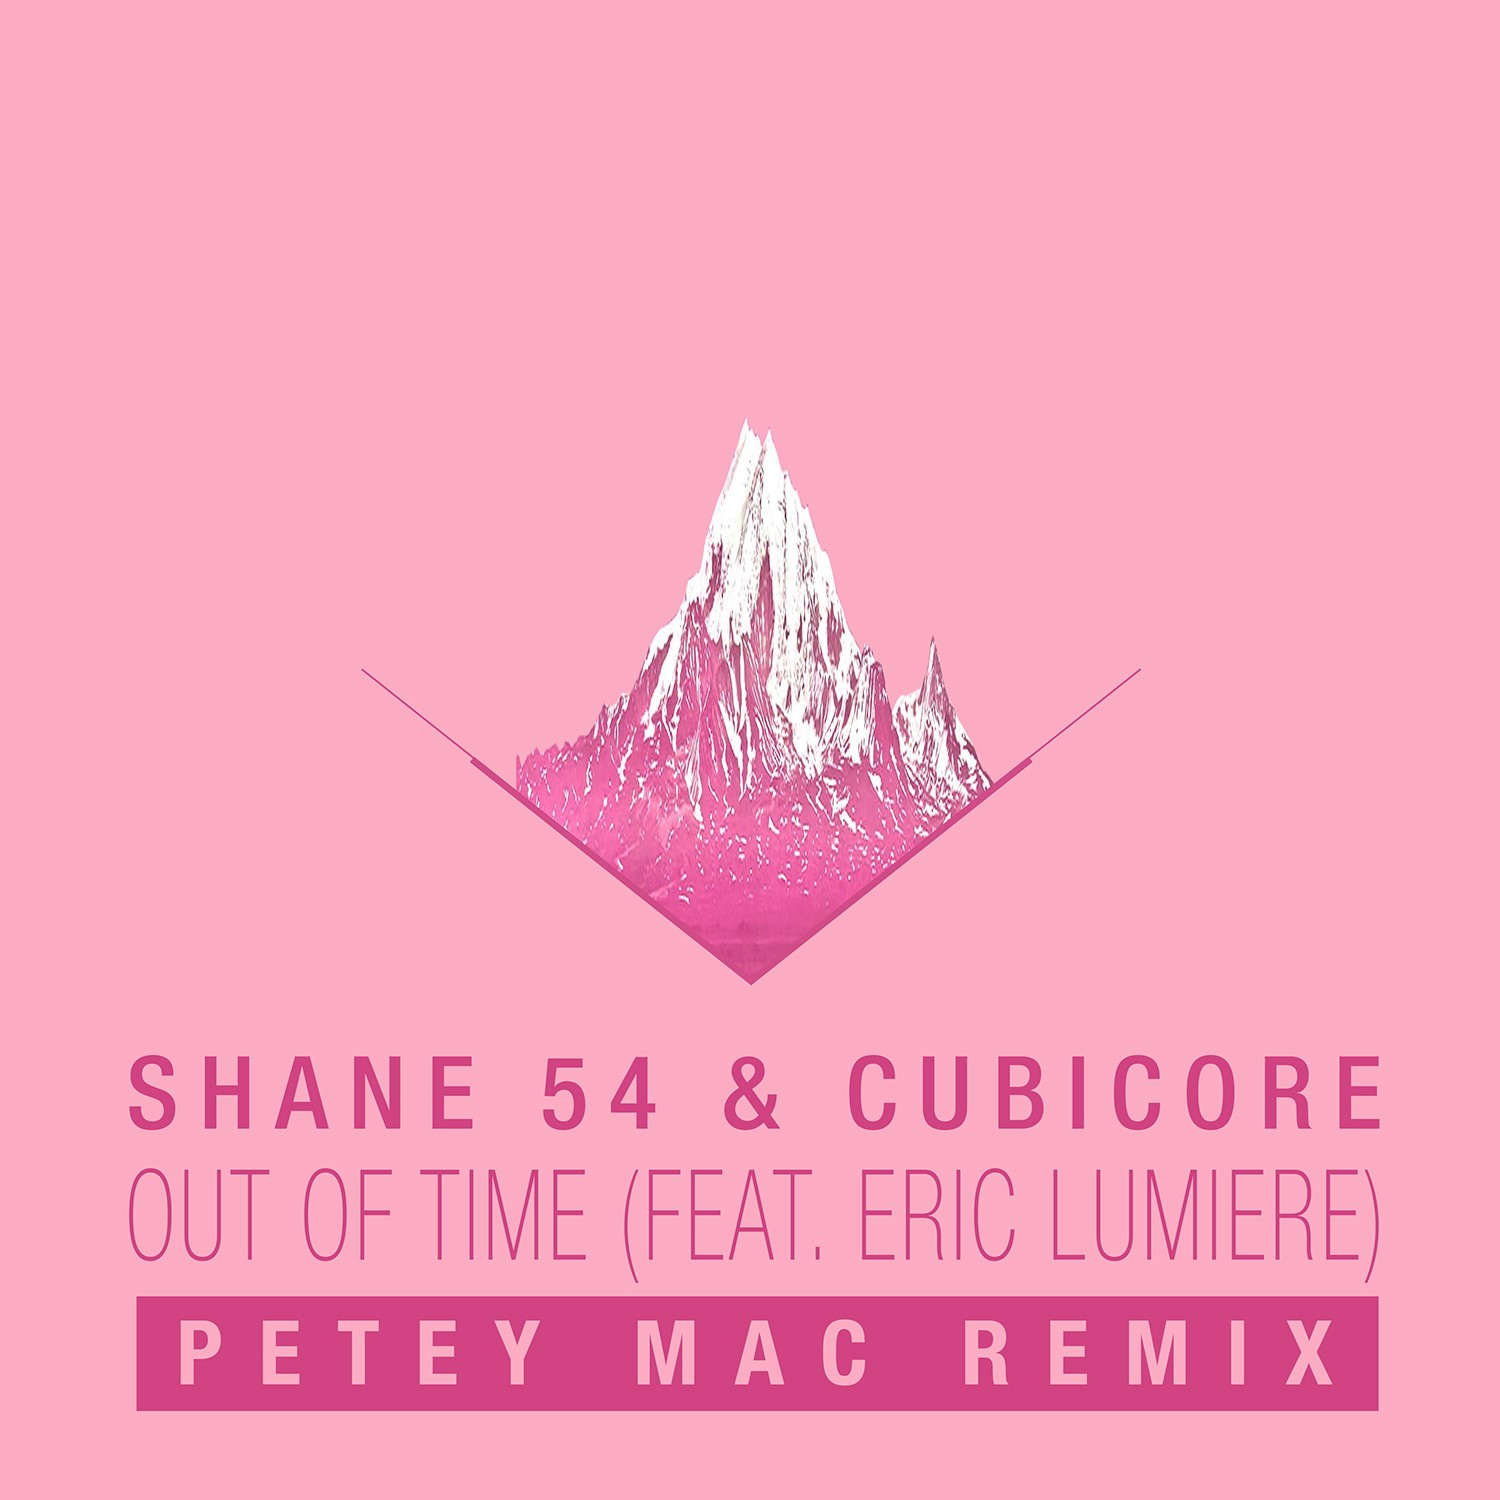 Shane 54, petey Mac. out of time, remix